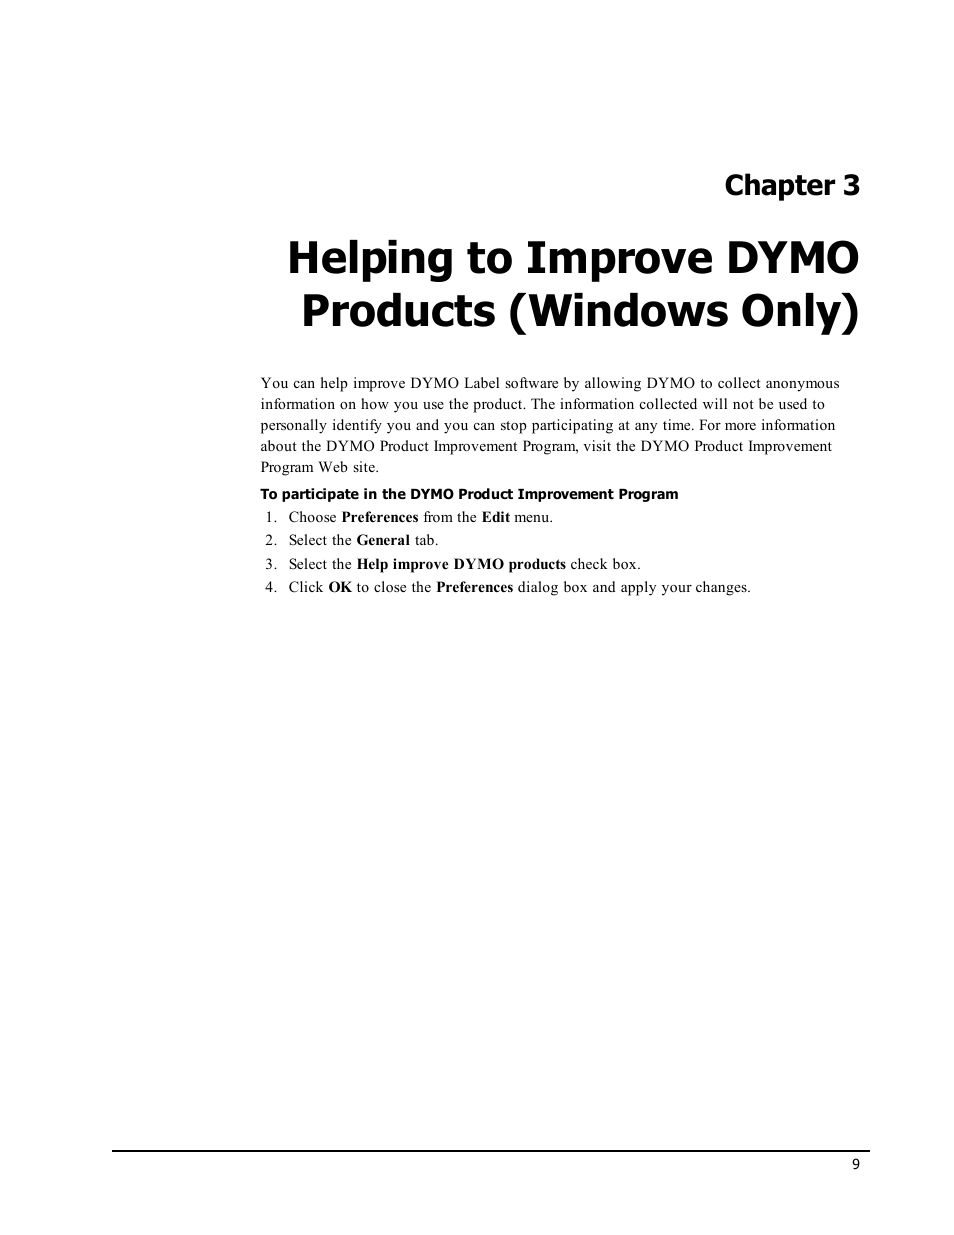 Helping to improve dymo products (windows only), Chapter 3 | Dymo  LabelWriter 450